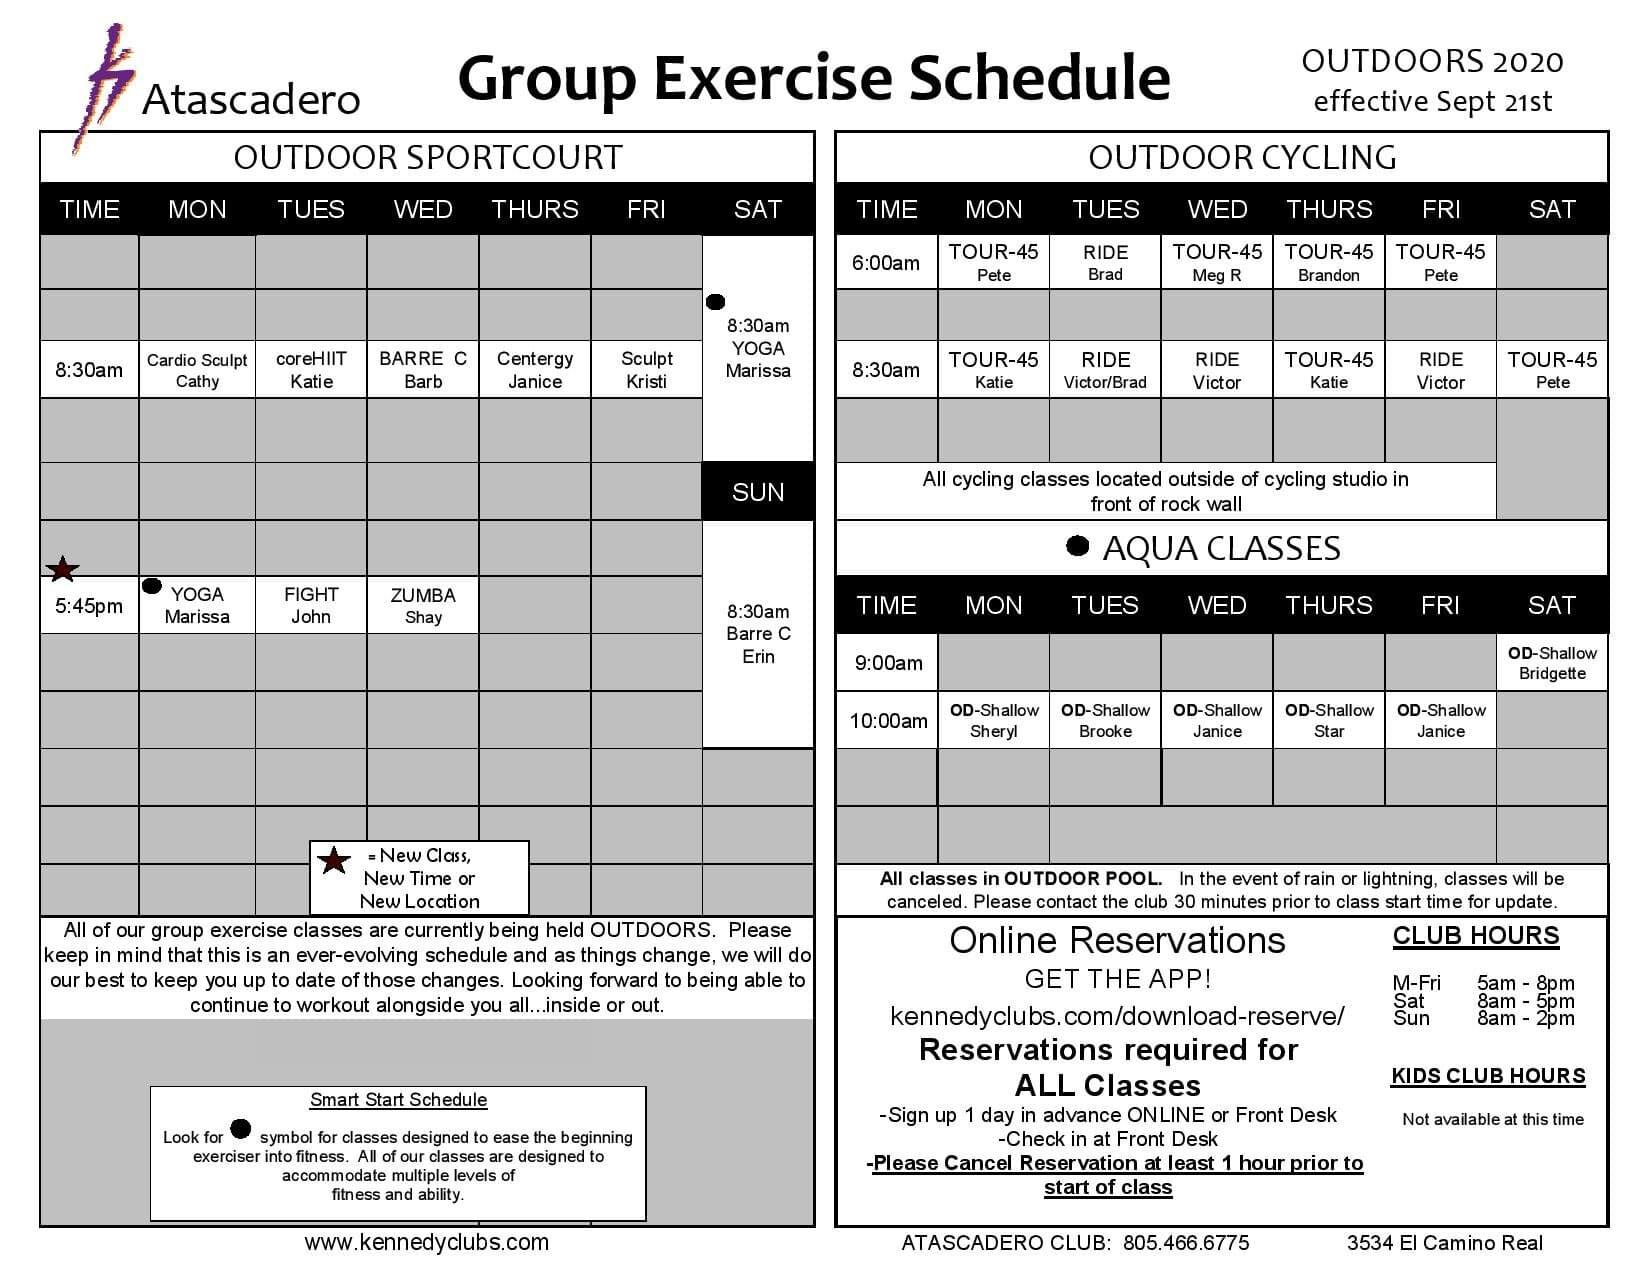 Kennedy Club Fitness Atascadero Outdoor Group Exercise Schedule 9 21 2020 v2